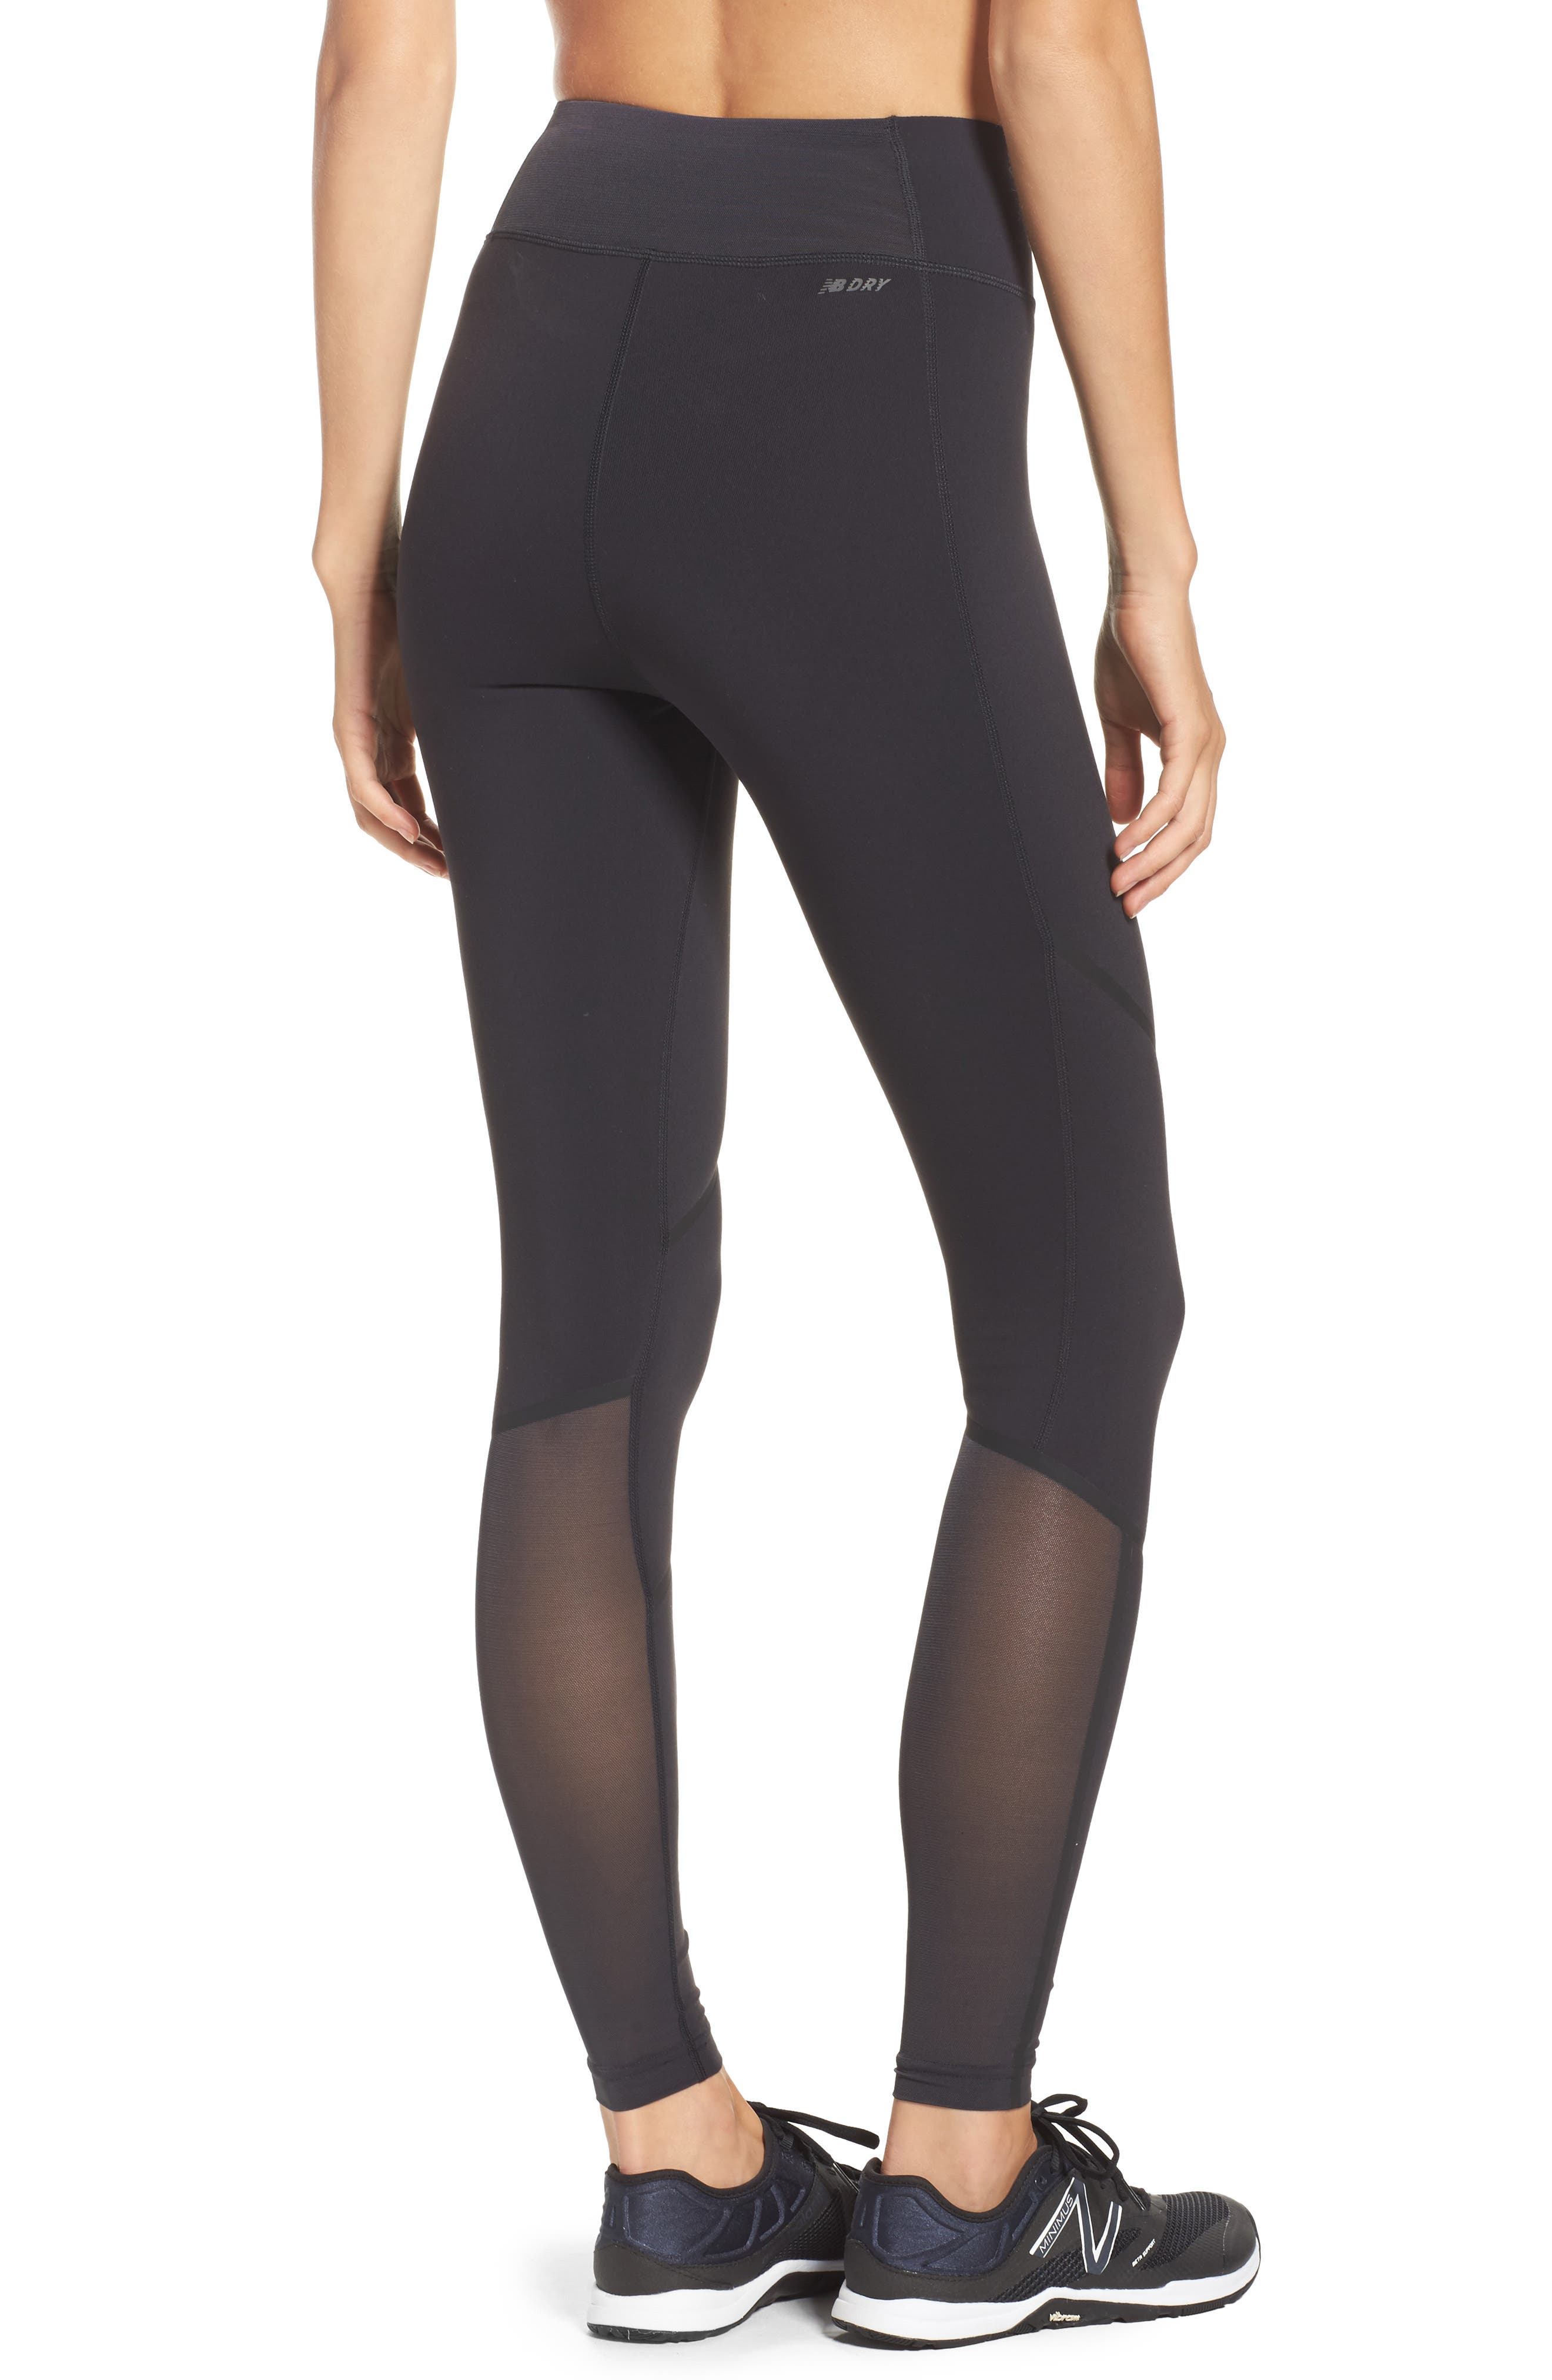 Intensity Tights,                             Alternate thumbnail 2, color,                             001